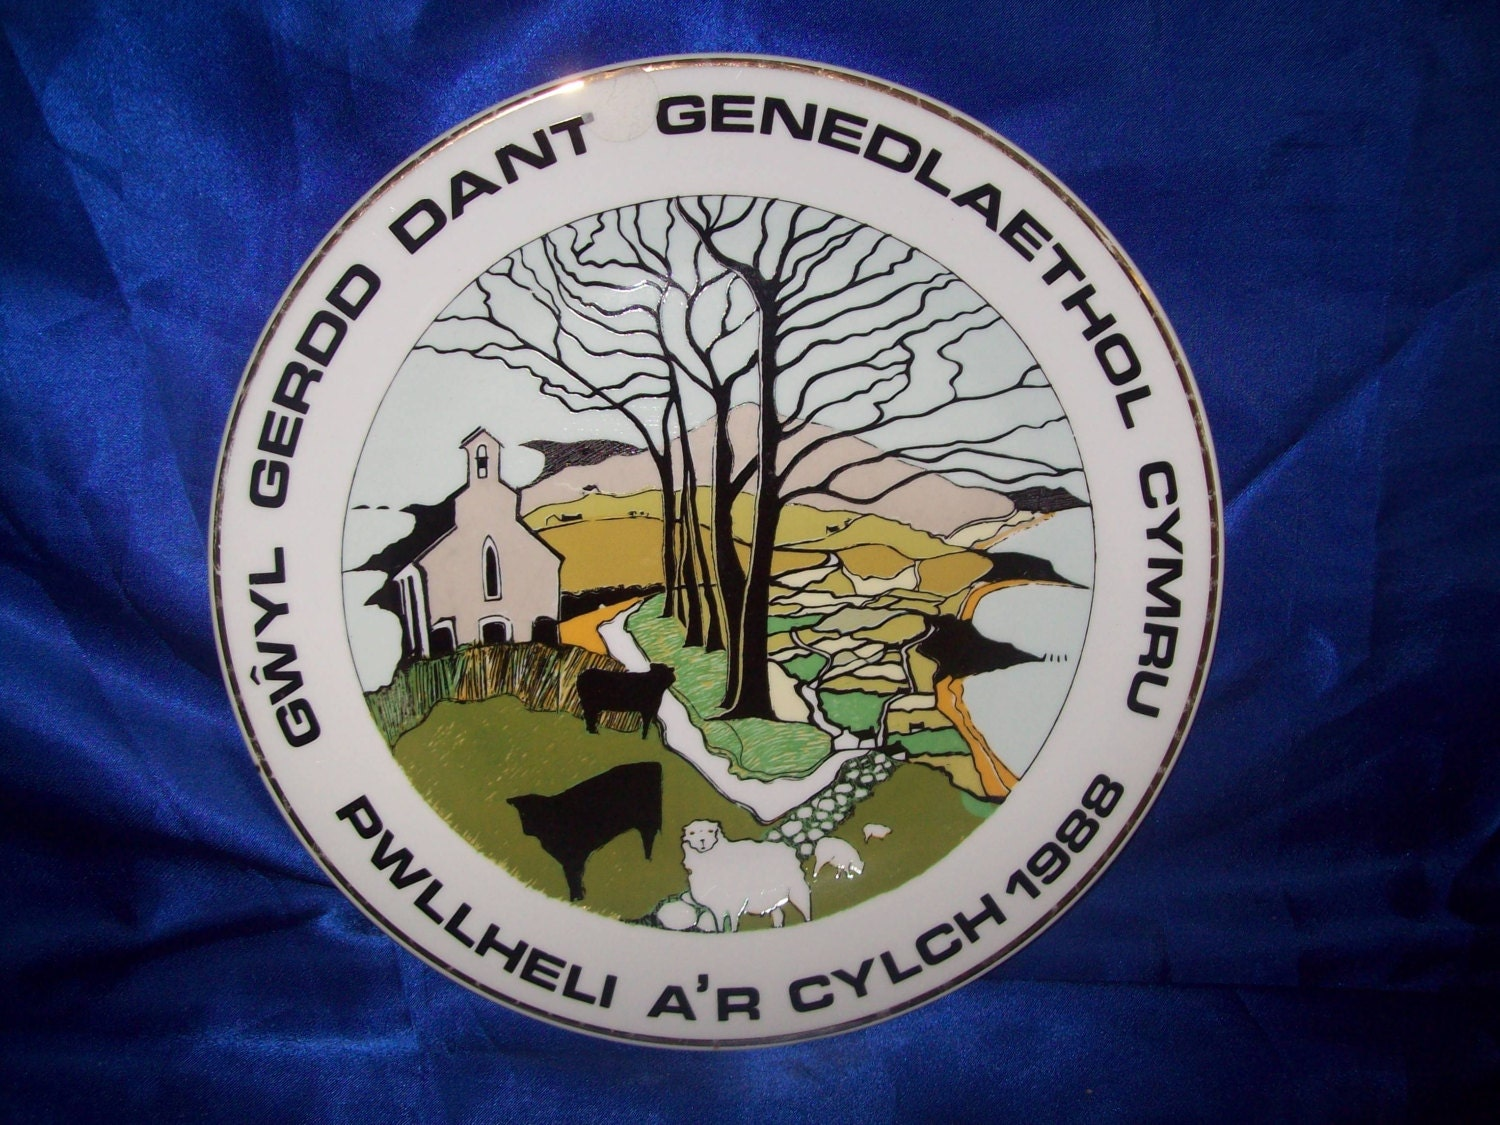 Welsh Made China Plate Wales National Singing Music Festival Pwllheli and Surrounding Area 1988